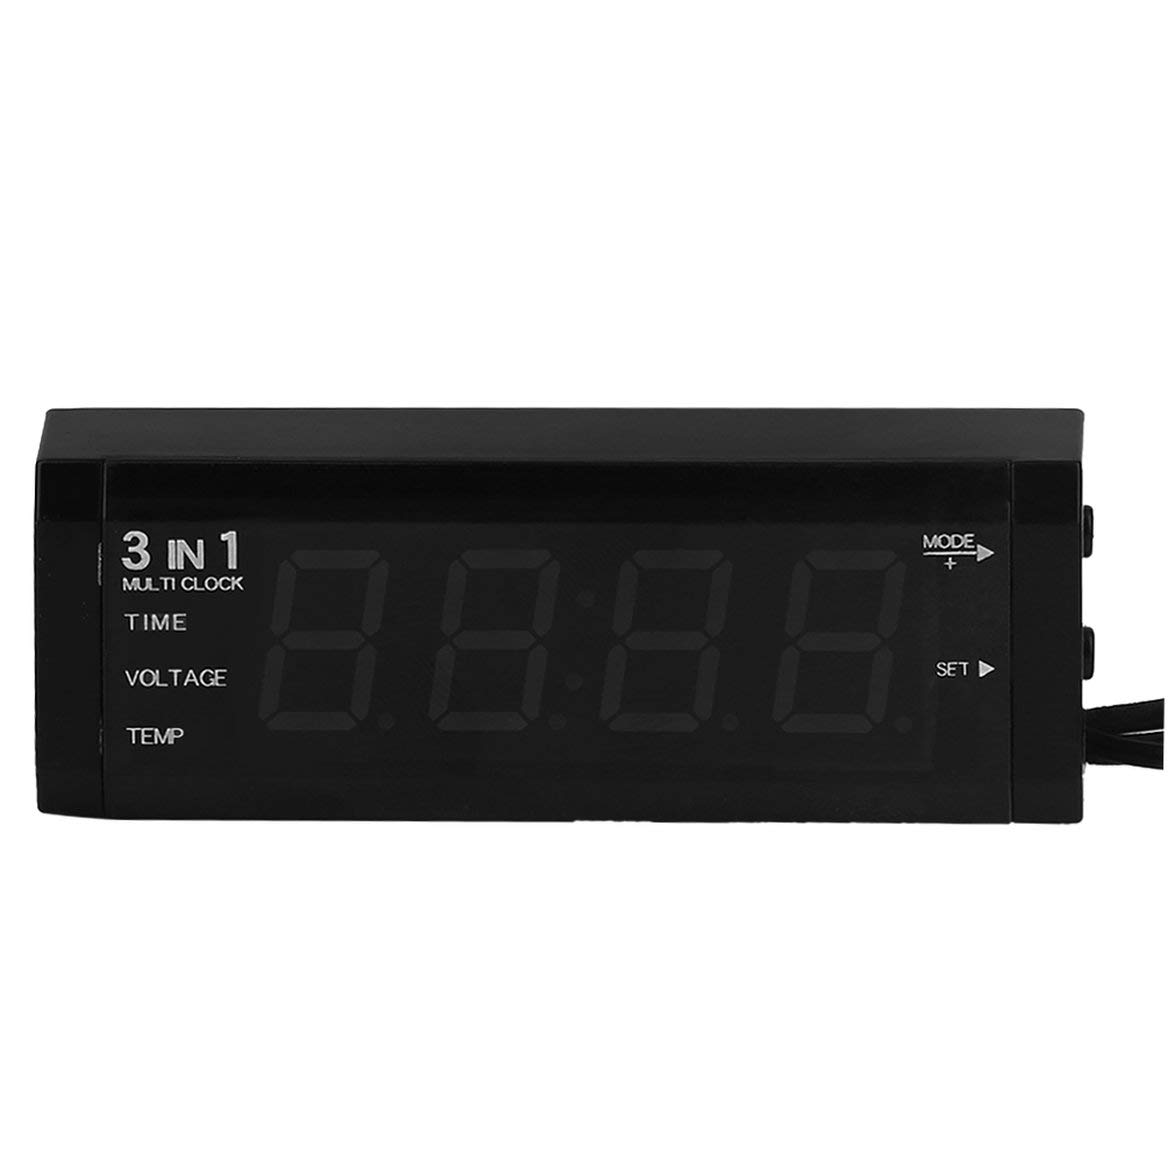 LCD Display Uhr Hei/ßer 24 V Digital Auto Auto Thermometer Kongqiabona Auto 3 in 1 12 V Auto Voltmeter Spannungsmesser Tester Monitor